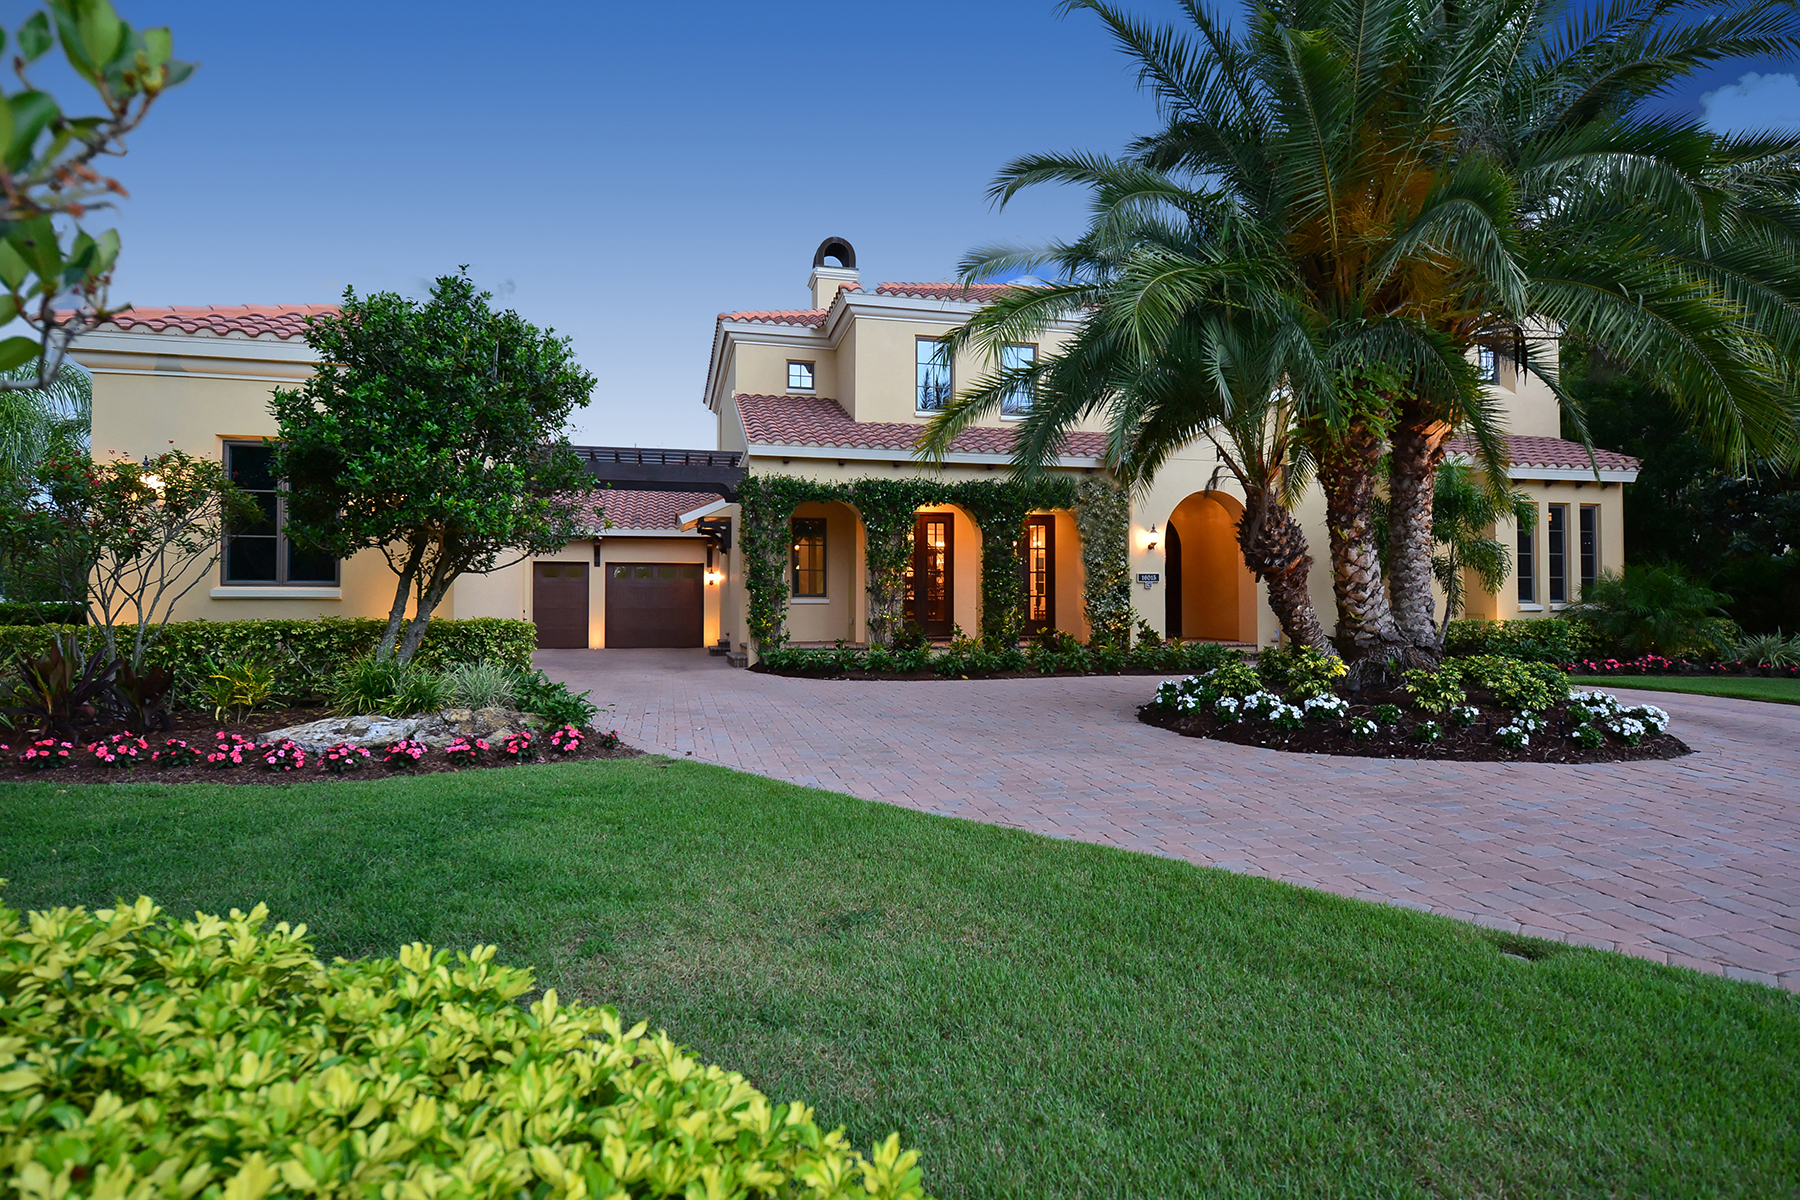 Villa per Vendita alle ore LAKEWOOD RANCH 16015 Foremast Pl Lakewood Ranch, Florida 34202 Stati Uniti